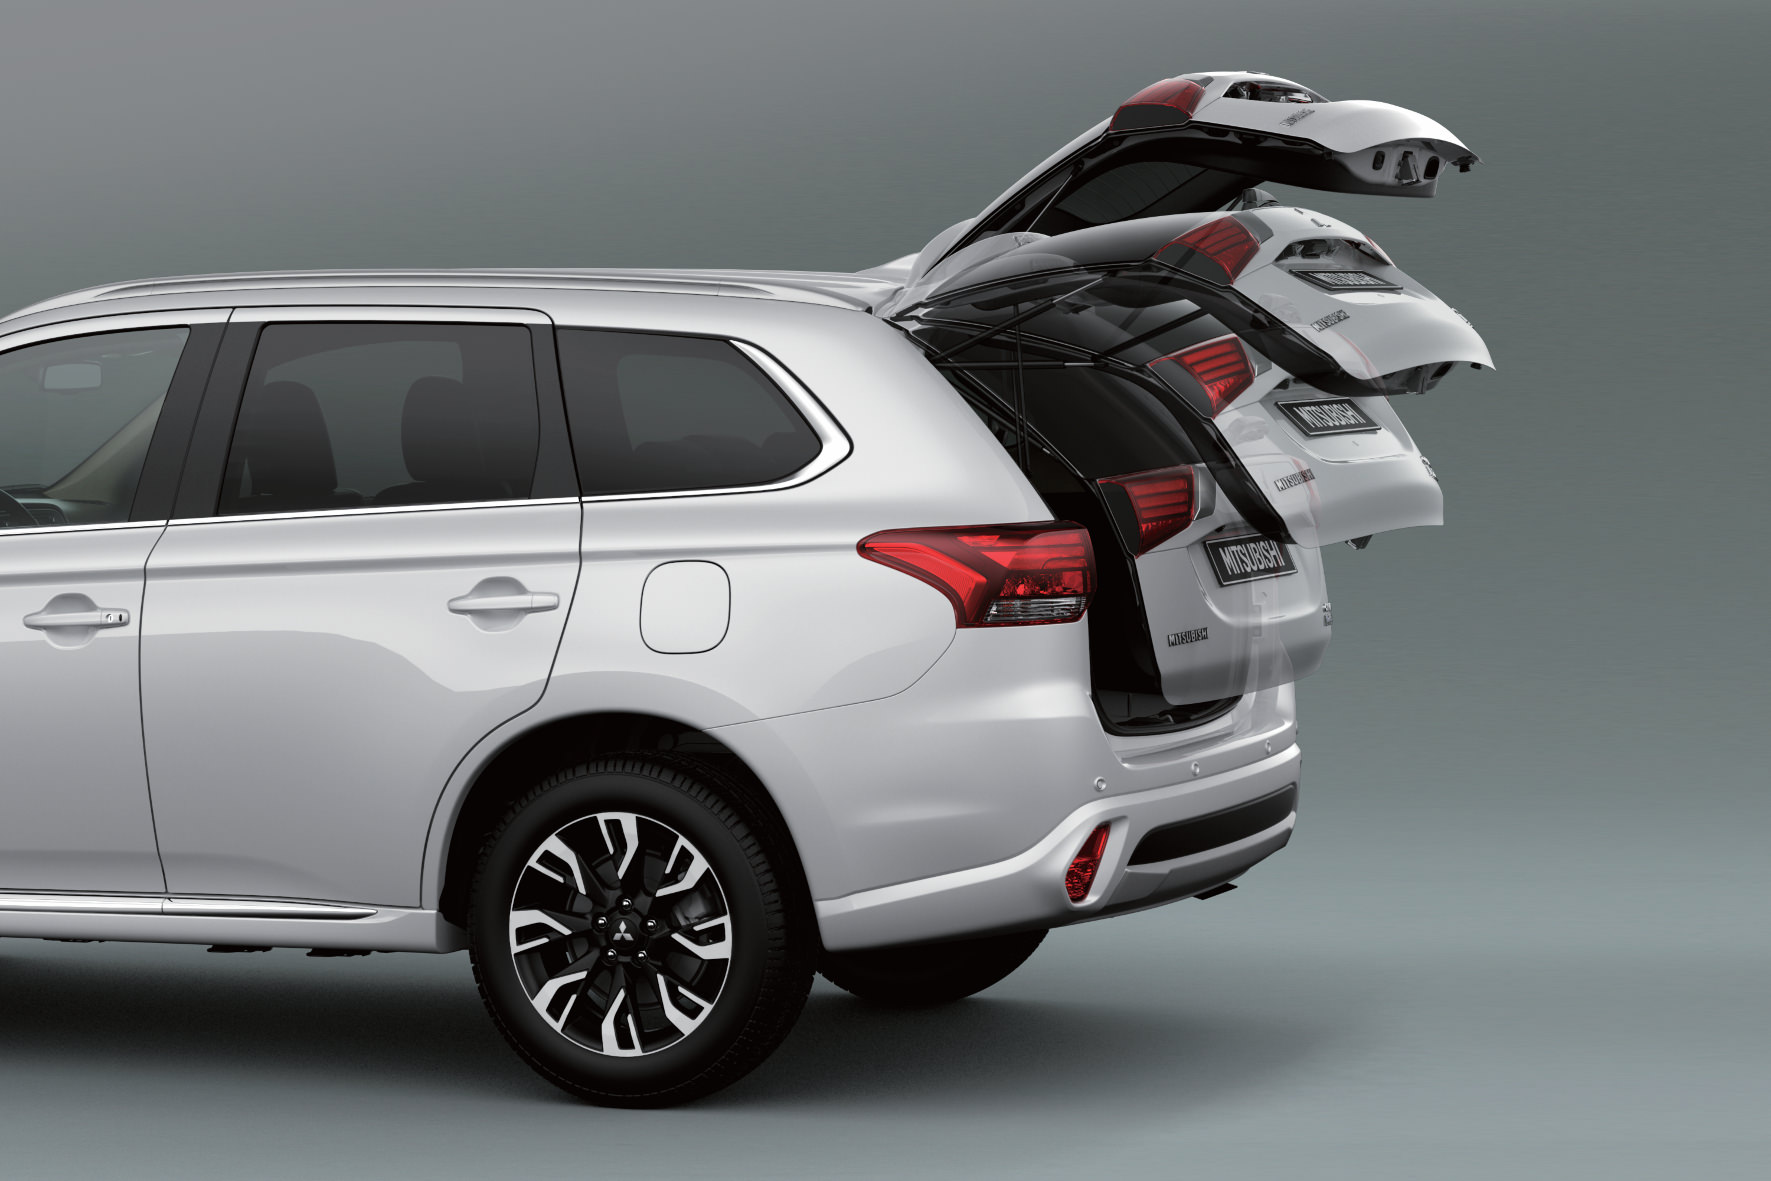 mitsubishi outlander phev 4x4 garage du vernay jdf bill. Black Bedroom Furniture Sets. Home Design Ideas